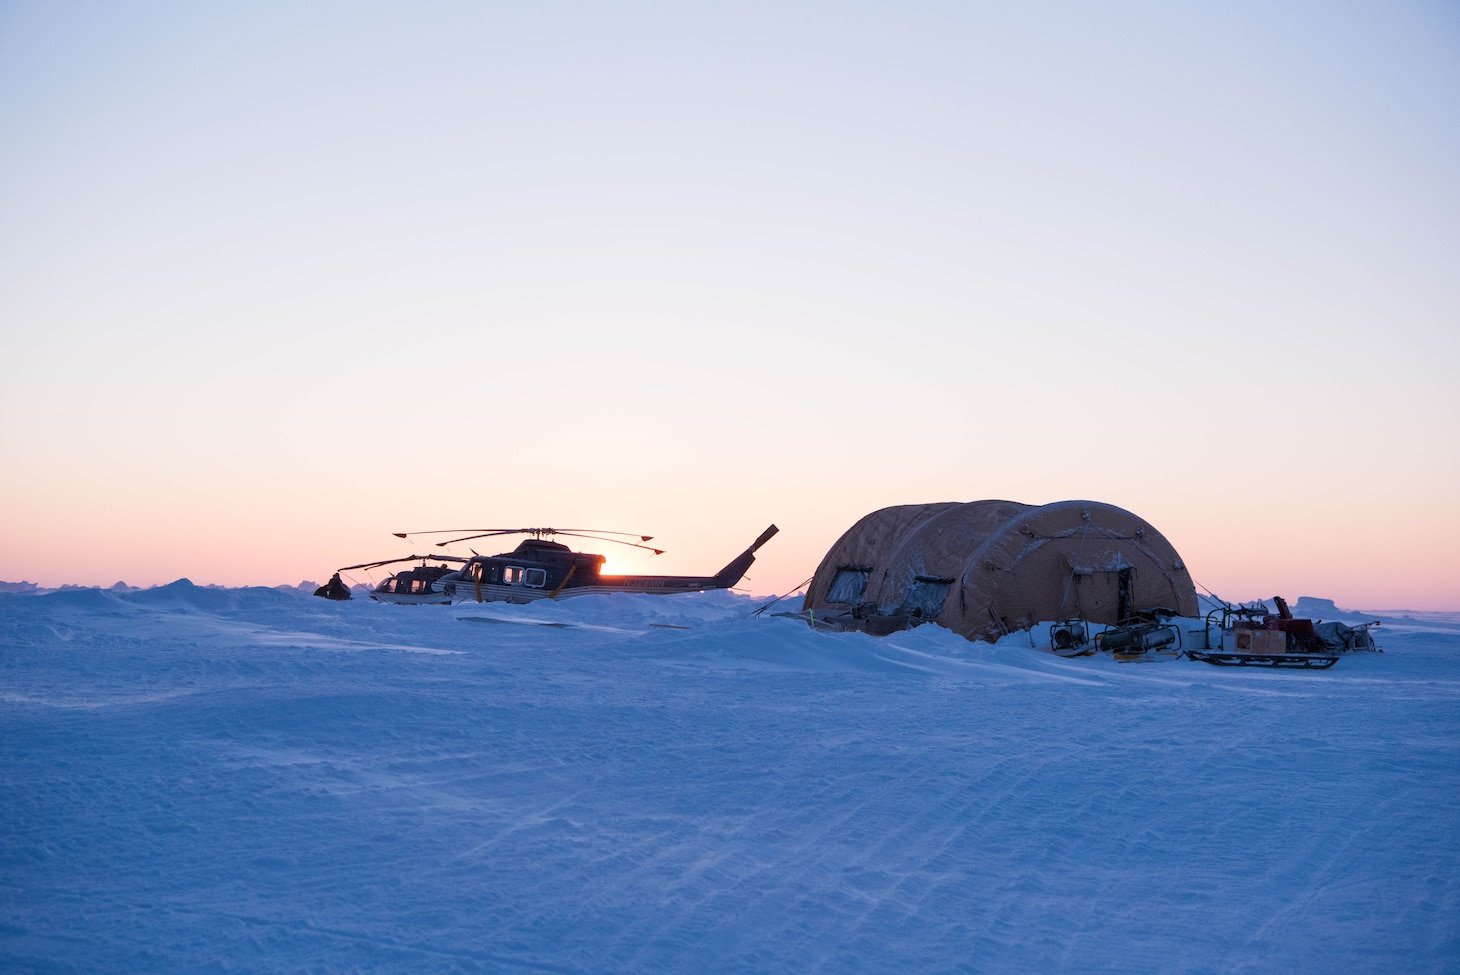 Ice Camp Skate (March 9, 2018) – View of Ice Camp Skate March 9, 2018 in support of Ice Exercise (ICEX) 2018. ICEX 2018 is a five-week exercise that allows the Navy to assess its operational readiness in the Arctic, increase experience in the region, advance understanding of the Arctic environment, and continue to develop relationships with other services, allies and partner organizations. (U.S. Navy photo by Mass Communication 2nd Class Micheal H. Lee)